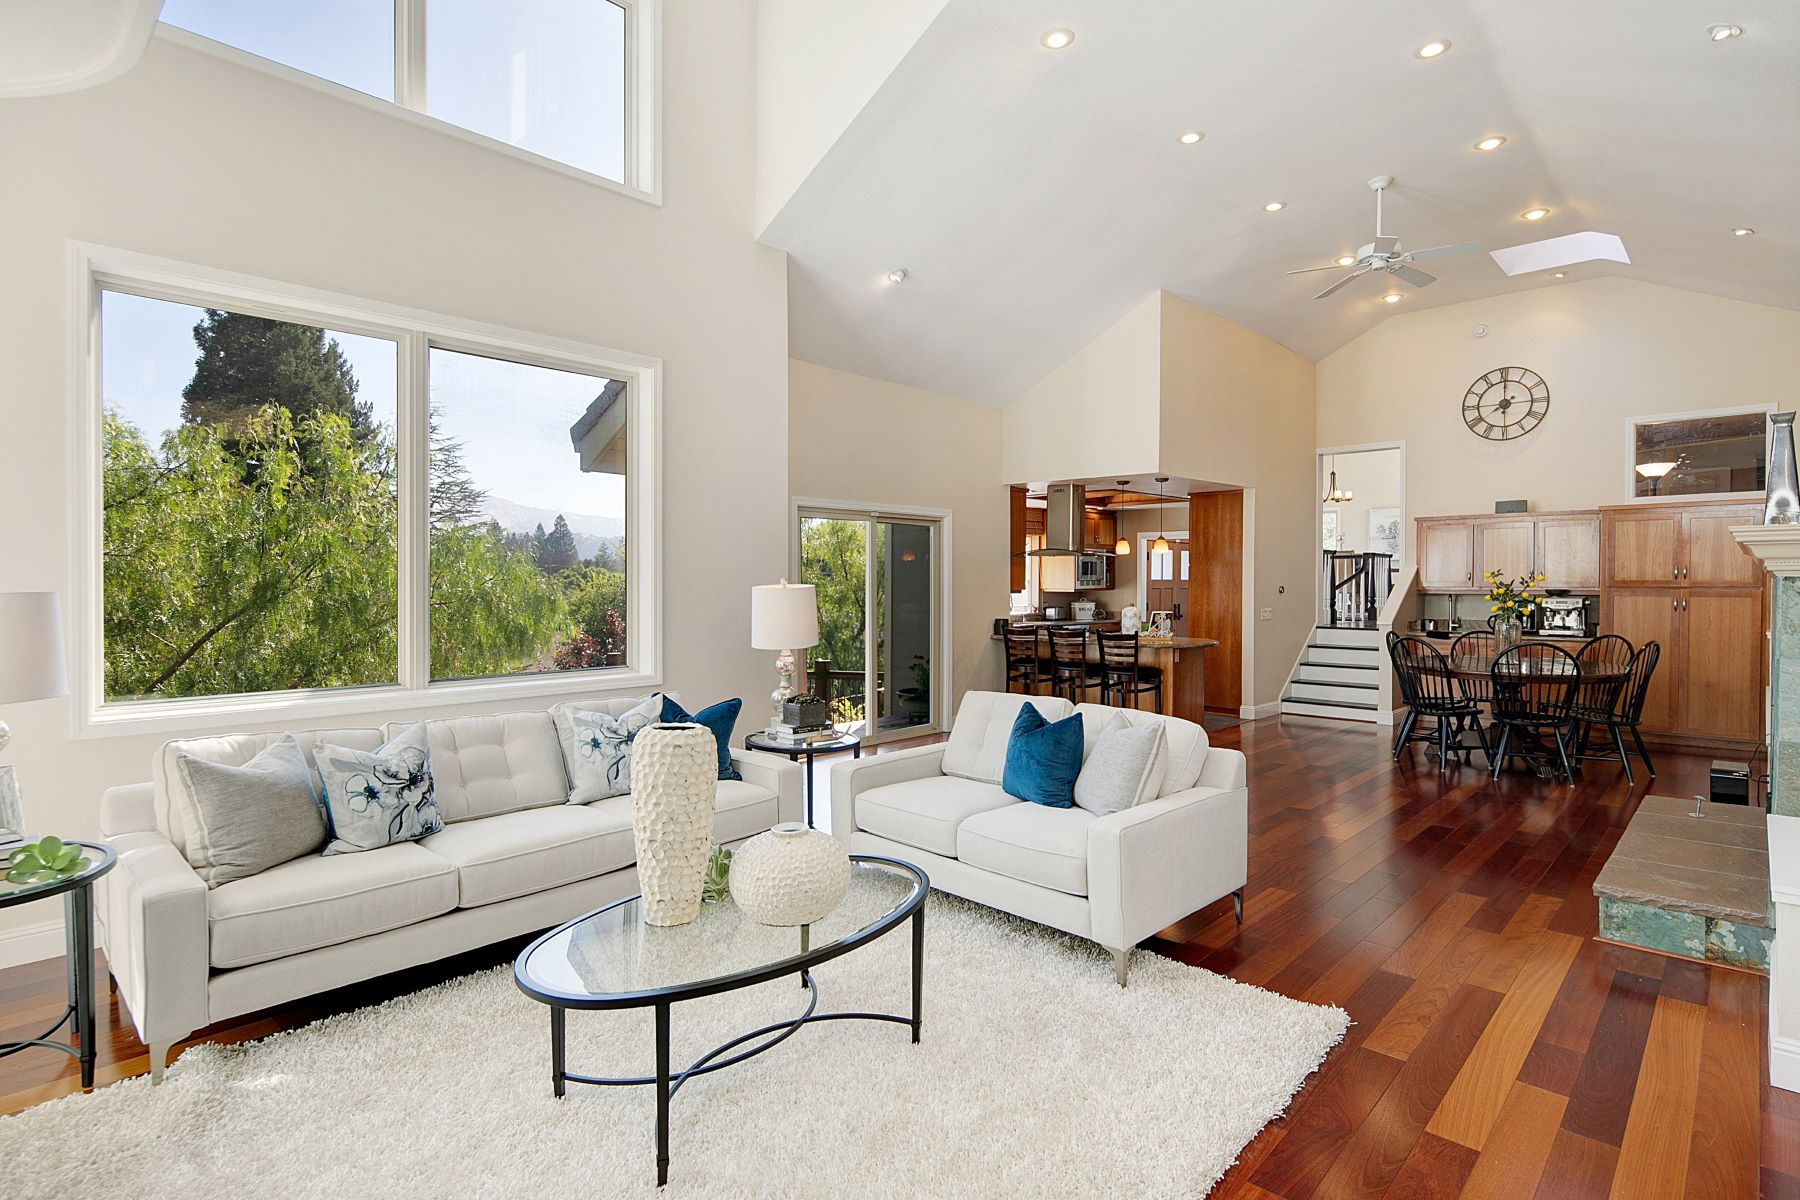 Single Family Homes for Sale at Stunning Westside Contemporary 3073 Lunada Lane Alamo, California 94507 United States